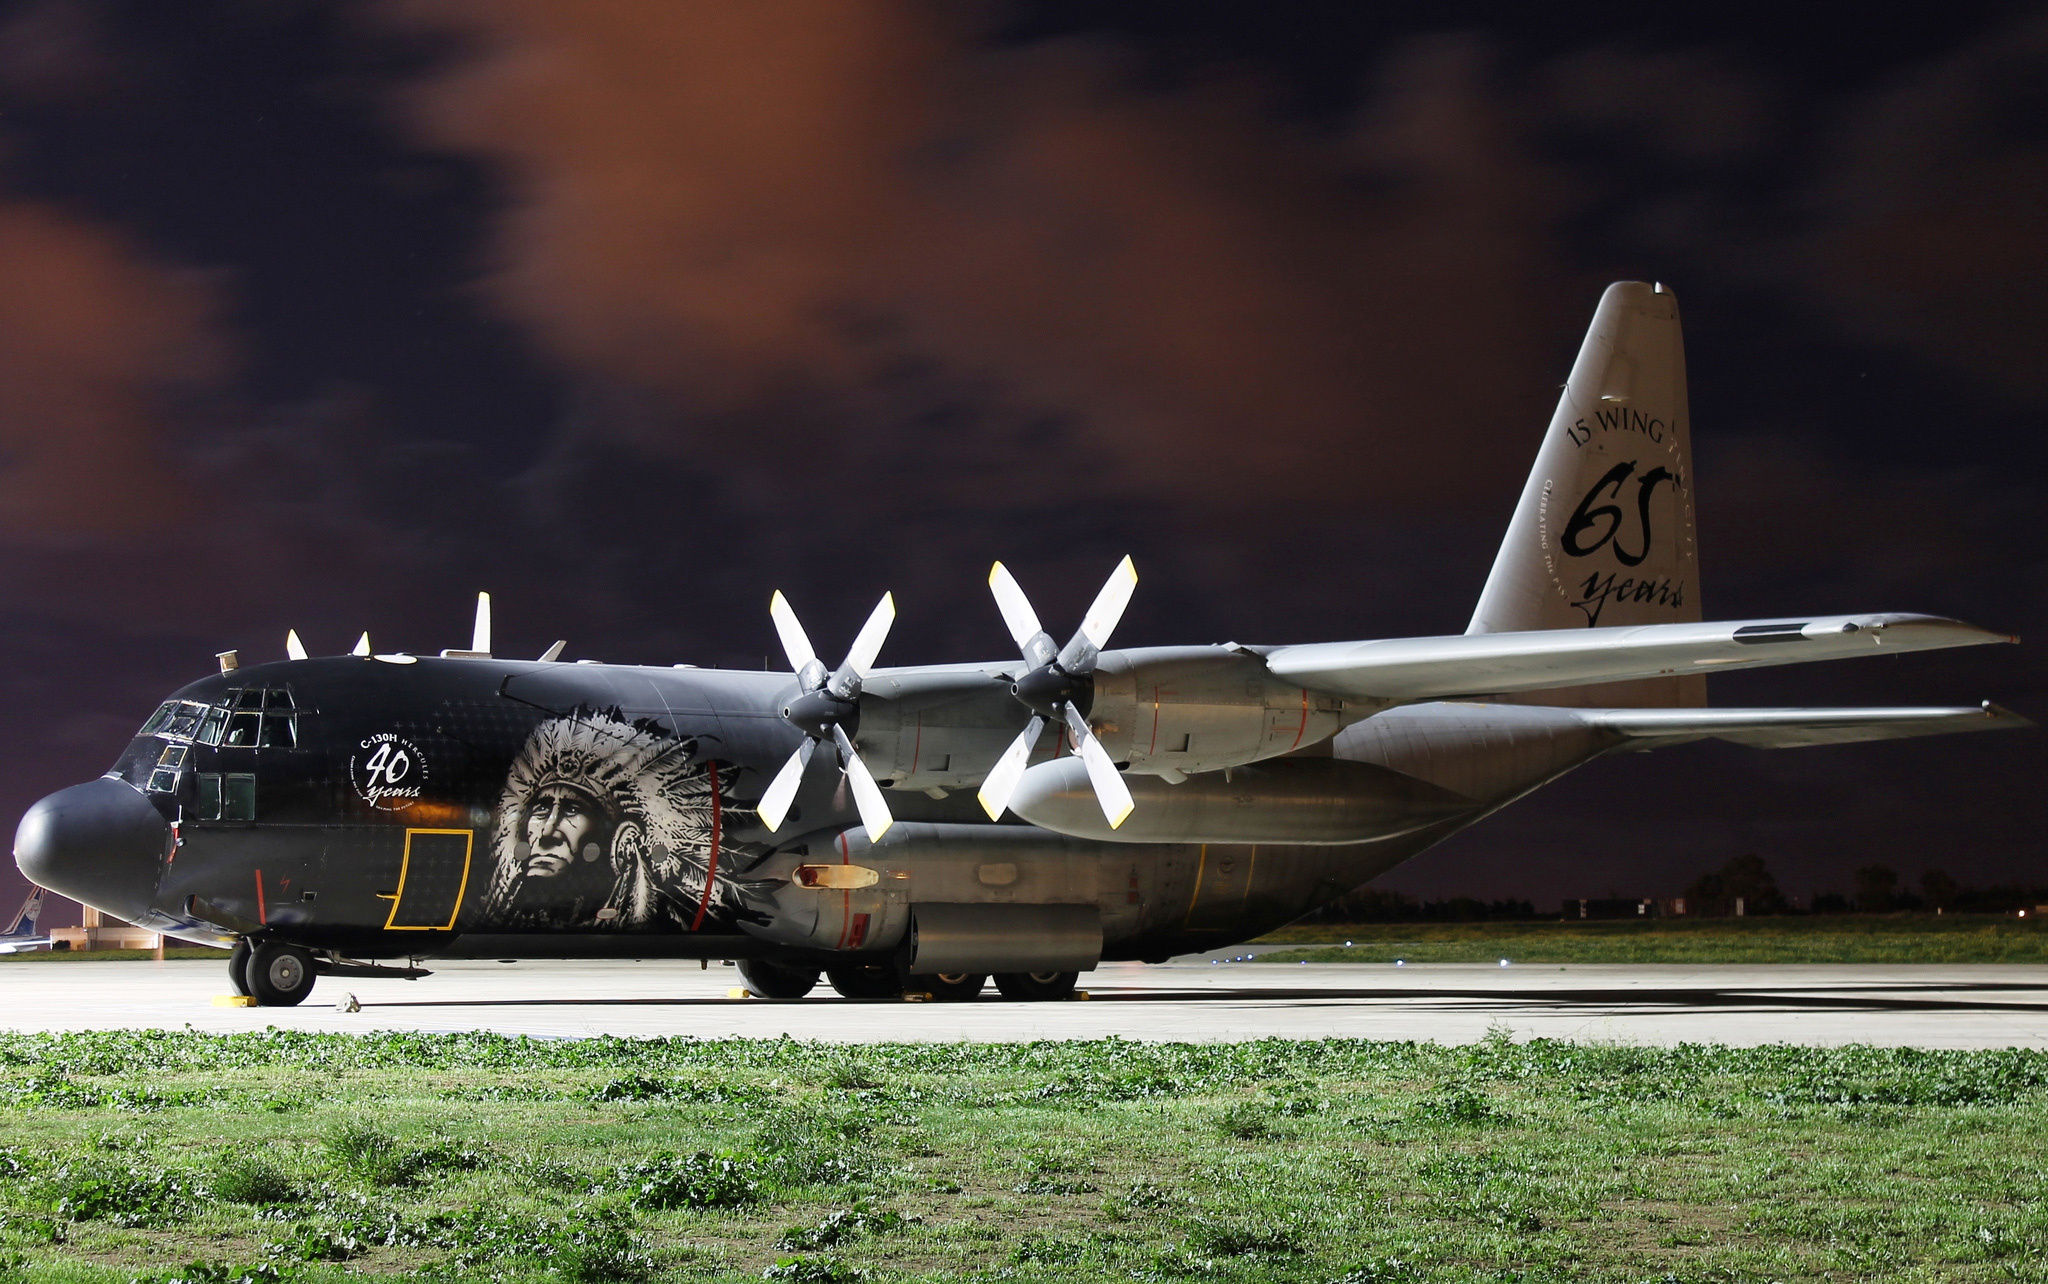 HELLO LADIES AND GENTLEMEN! In this tutorial I show you how to build the modern warfare Lockheed C130 Hercules military transport aircraft! If you use